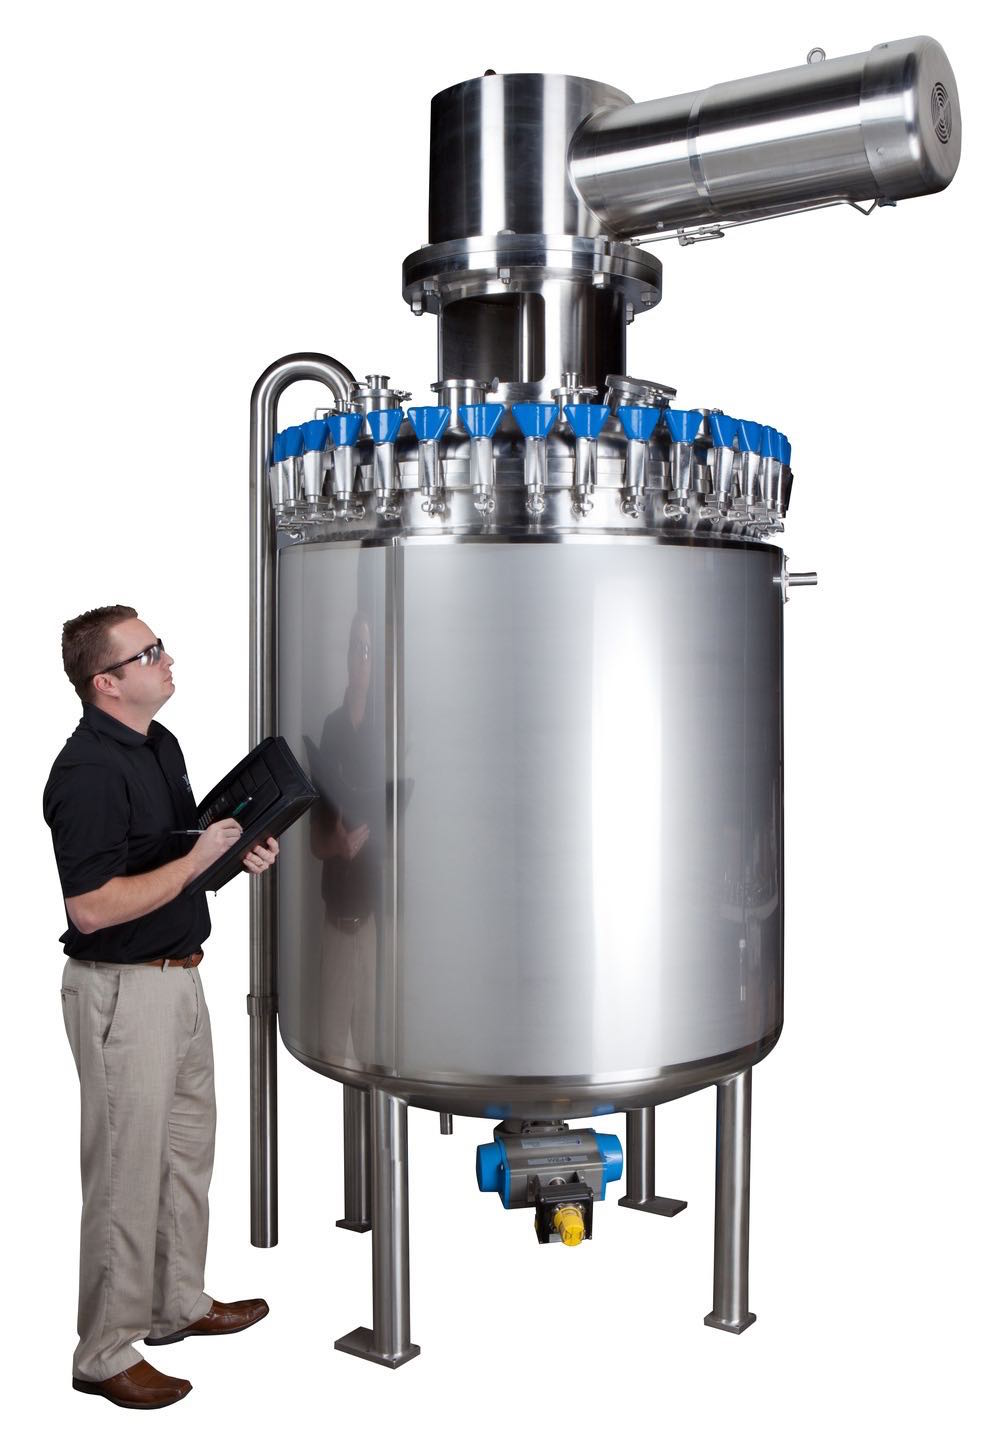 Stainless steel tanks and pressure vessels like this one set a standard.